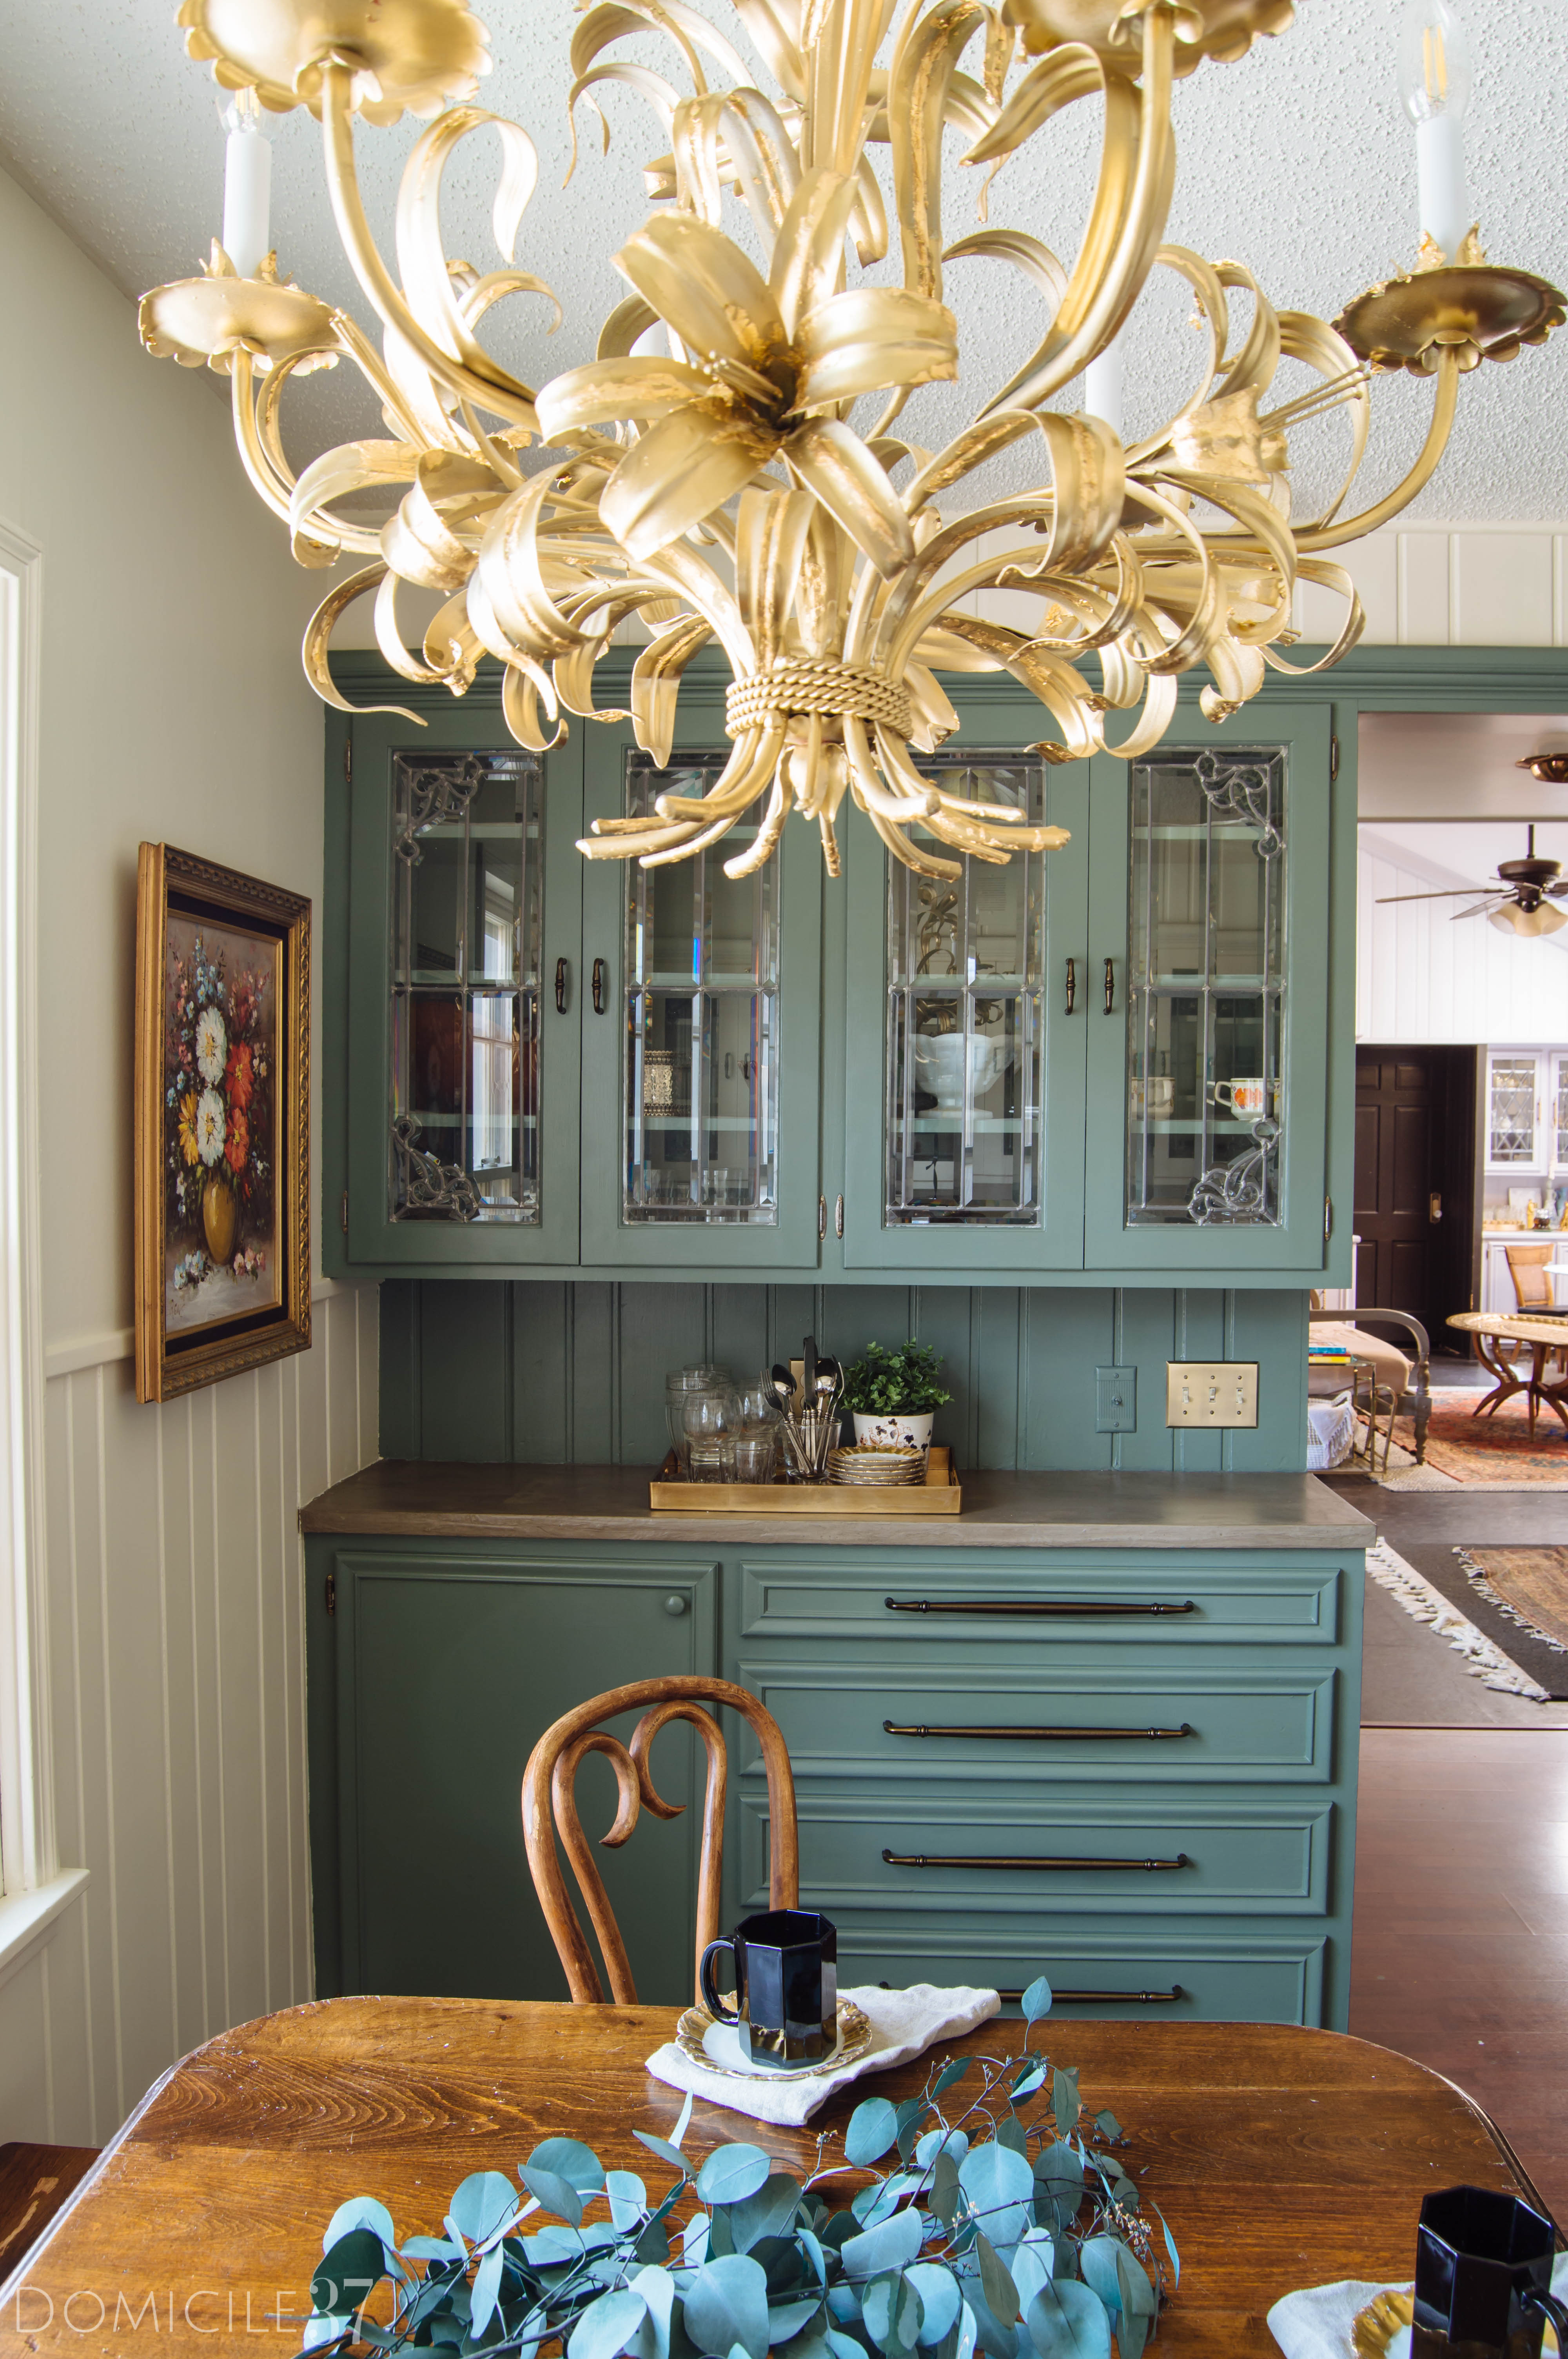 One Room Challenge, European Inspired Breakfast Area, Dining Room Makeover, Vintage Wood Table, Farrow and Ball, Thomas Mach, Clay subway tile, Creame cabinets white subway tile, Farrow and Ball Clunch Paint, simple decor styling, italian toleware chandelier, persian rug dining room, DIY gold leaf light fixture, vintage oil painting, green kitchen cabinets, Liberty Hardware Antique Brass Pulls, Liberty Hardware Mix and Match Hardware